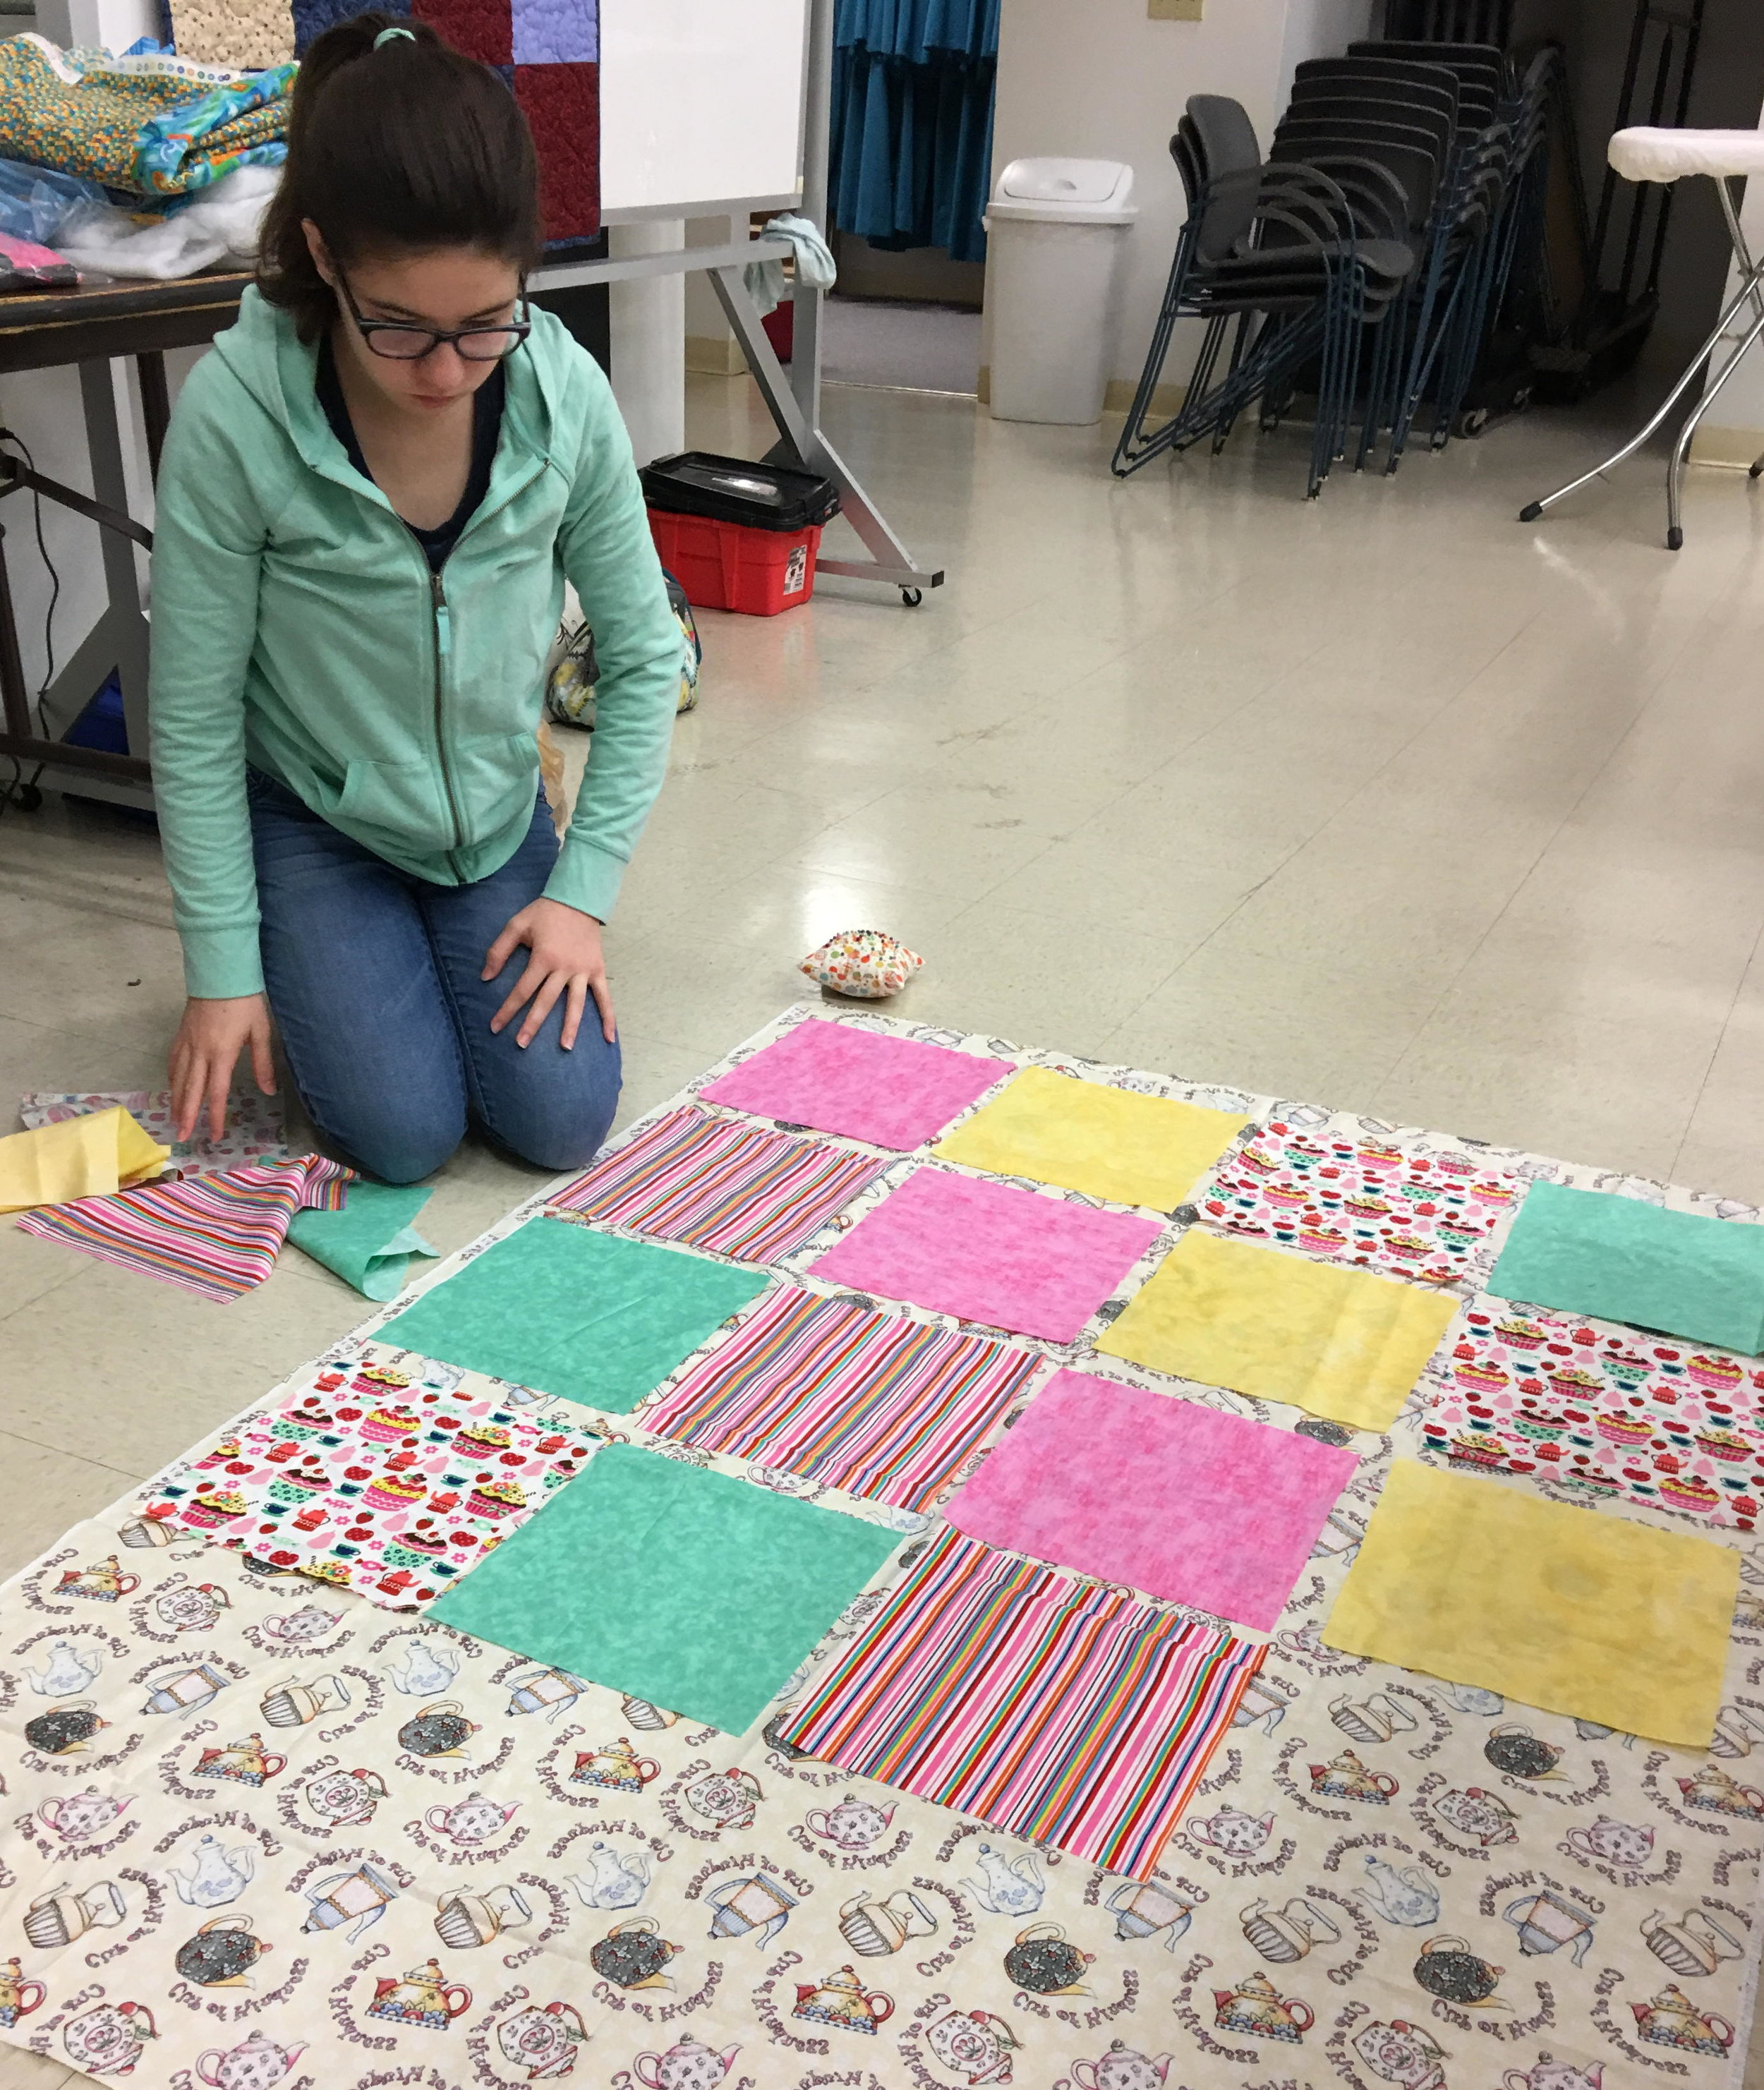 Madison_quilt_Layout.JPG